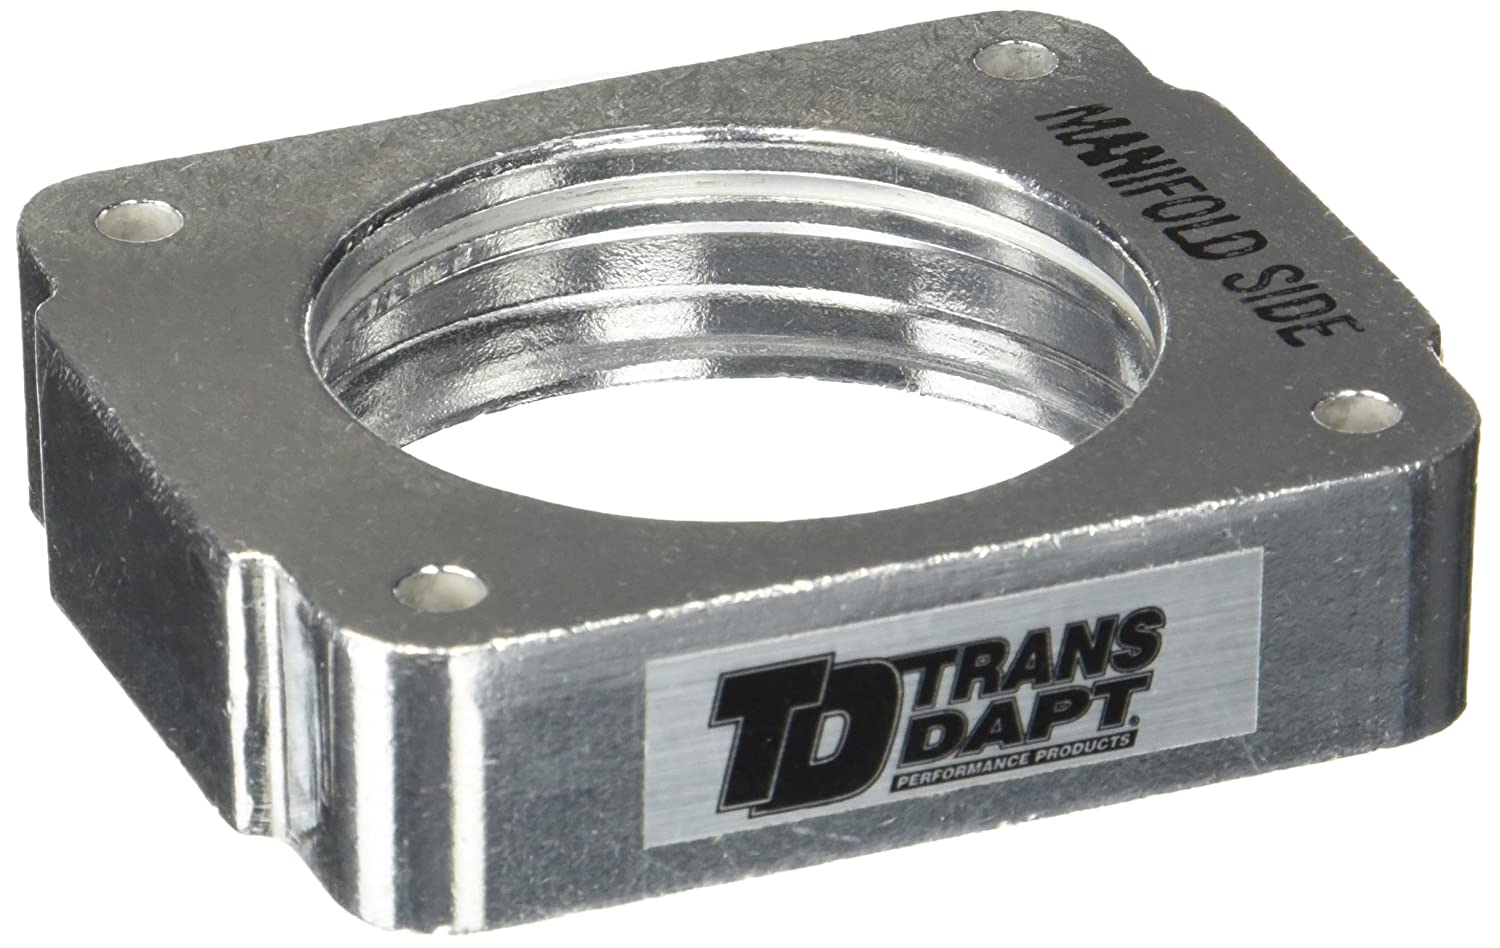 Transdapt 2517 FORD 4.6L FI SPACER 97-99 Trans-Dapt Performance